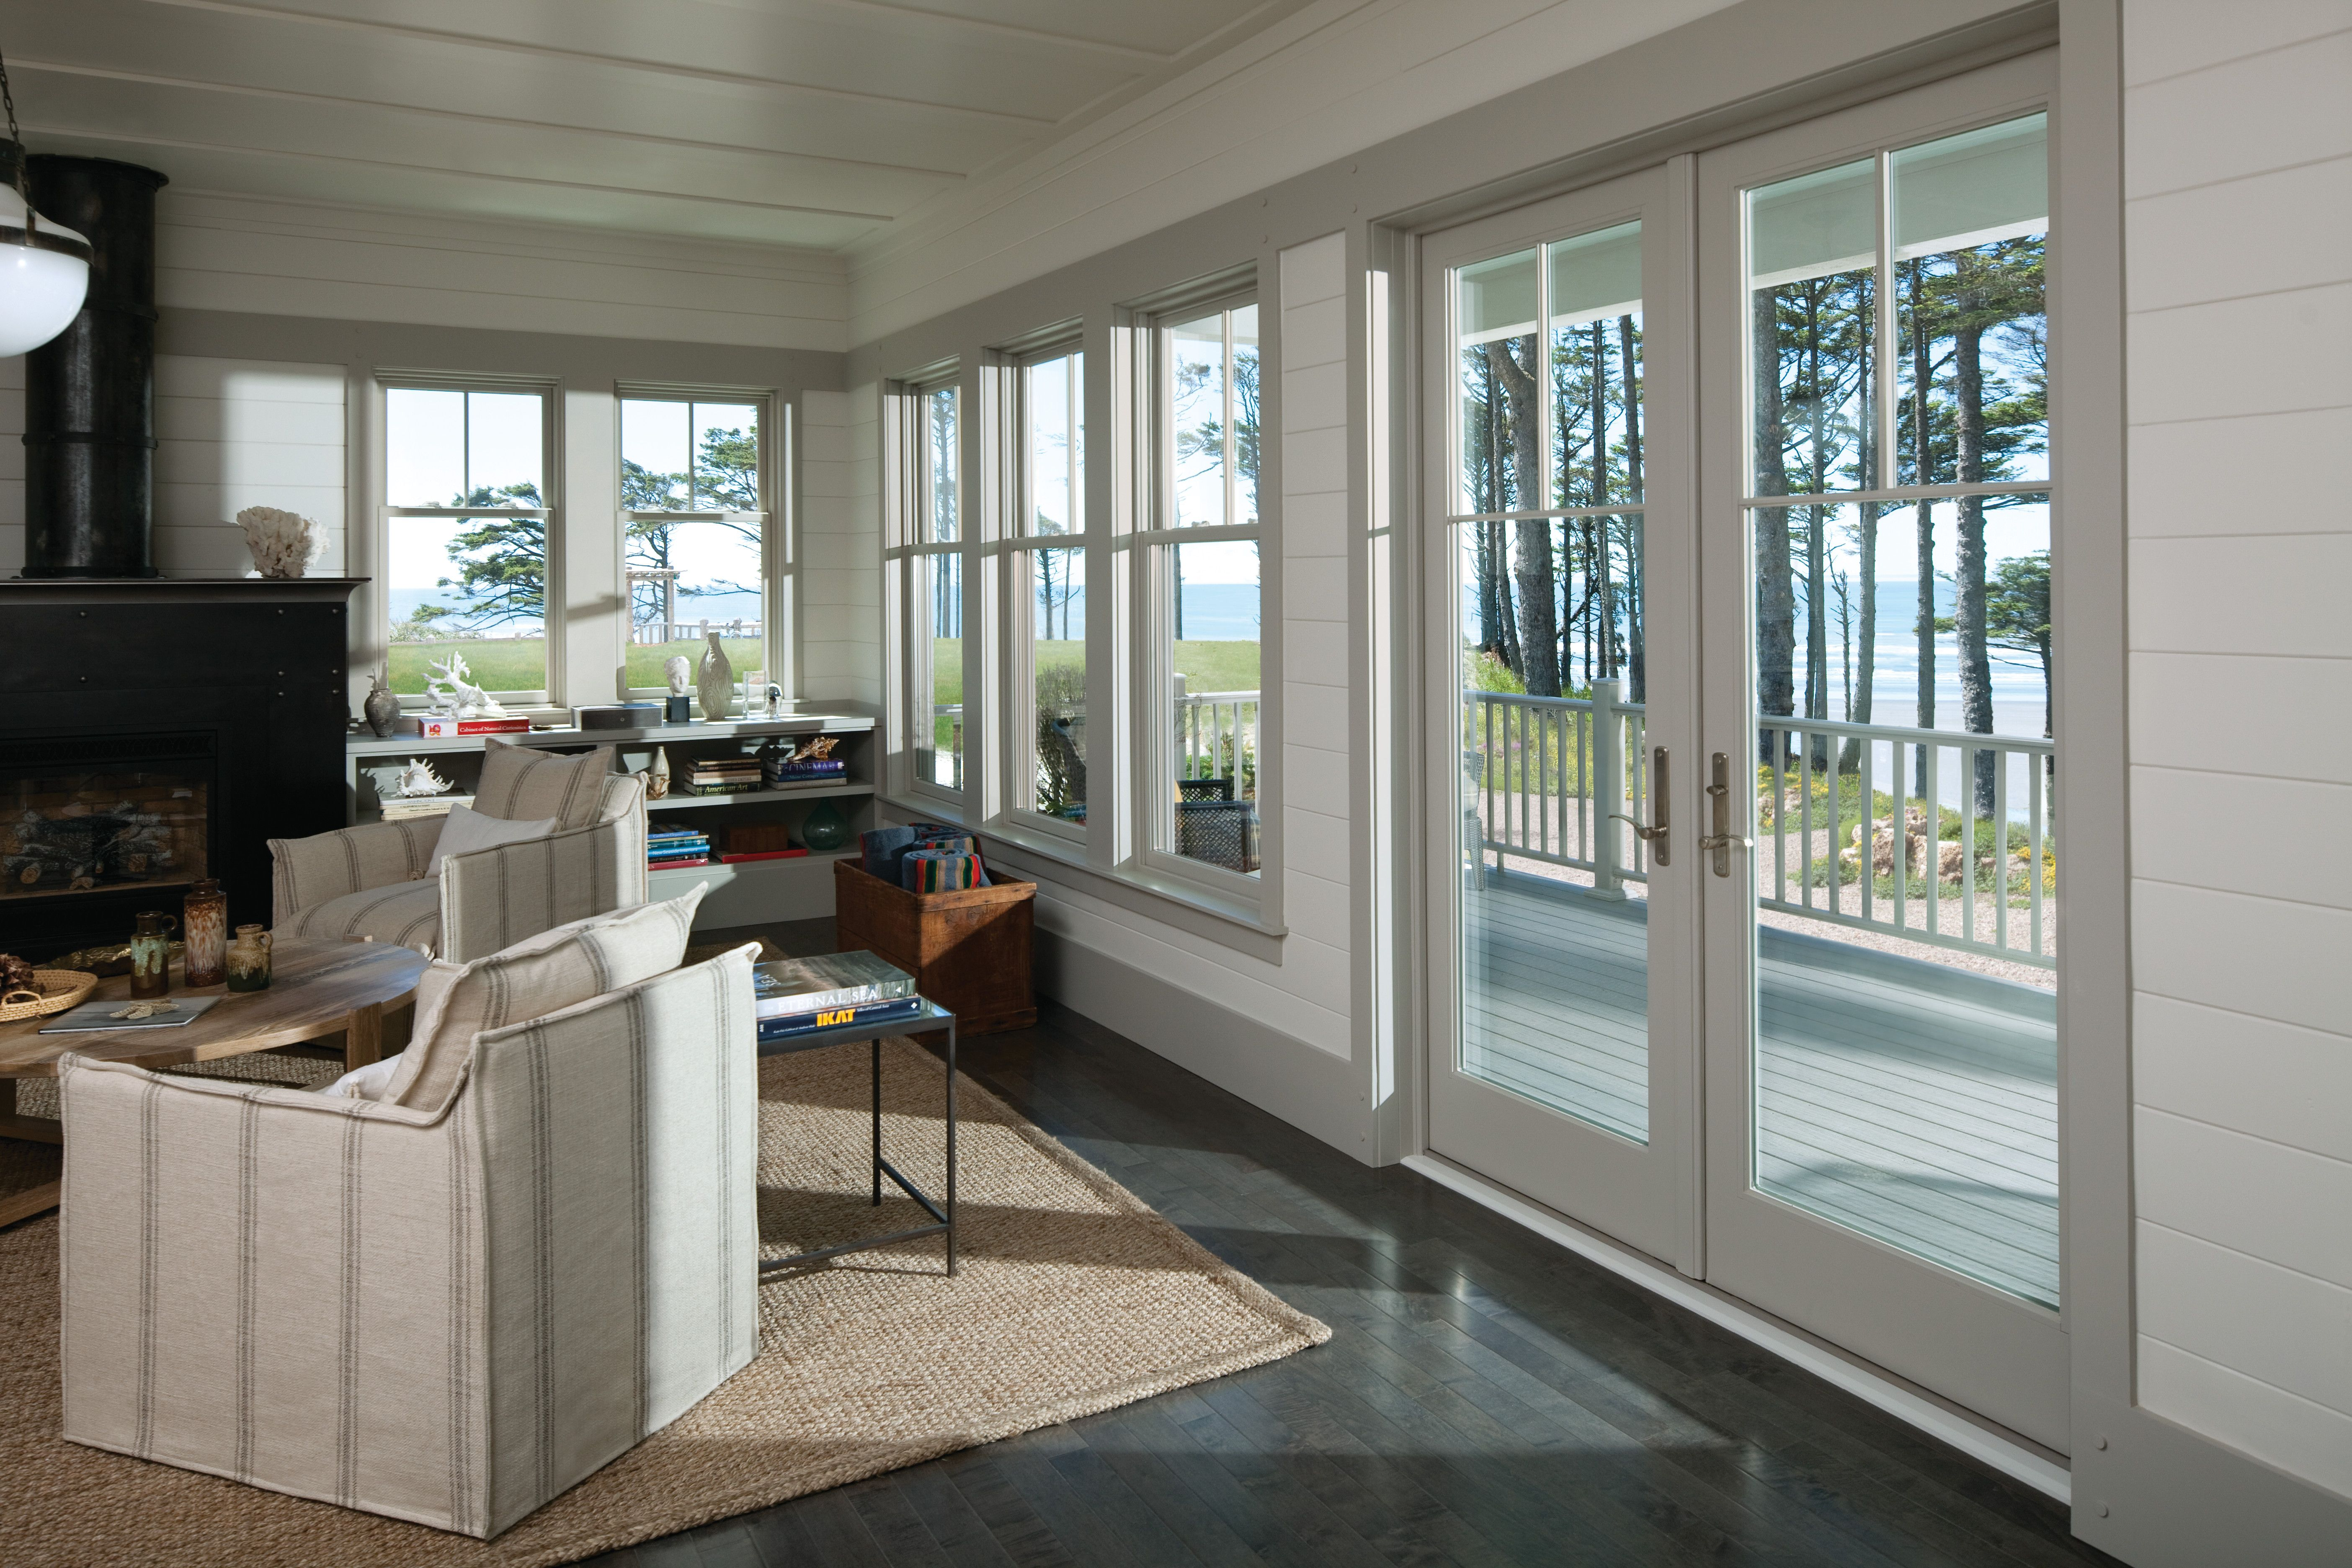 Add Classic Elegance To Any Home With Renewal By Andersen Double Hung Replacement Windows Our Double Hung W Hinged Patio Doors Impact Windows Coastal Cottage